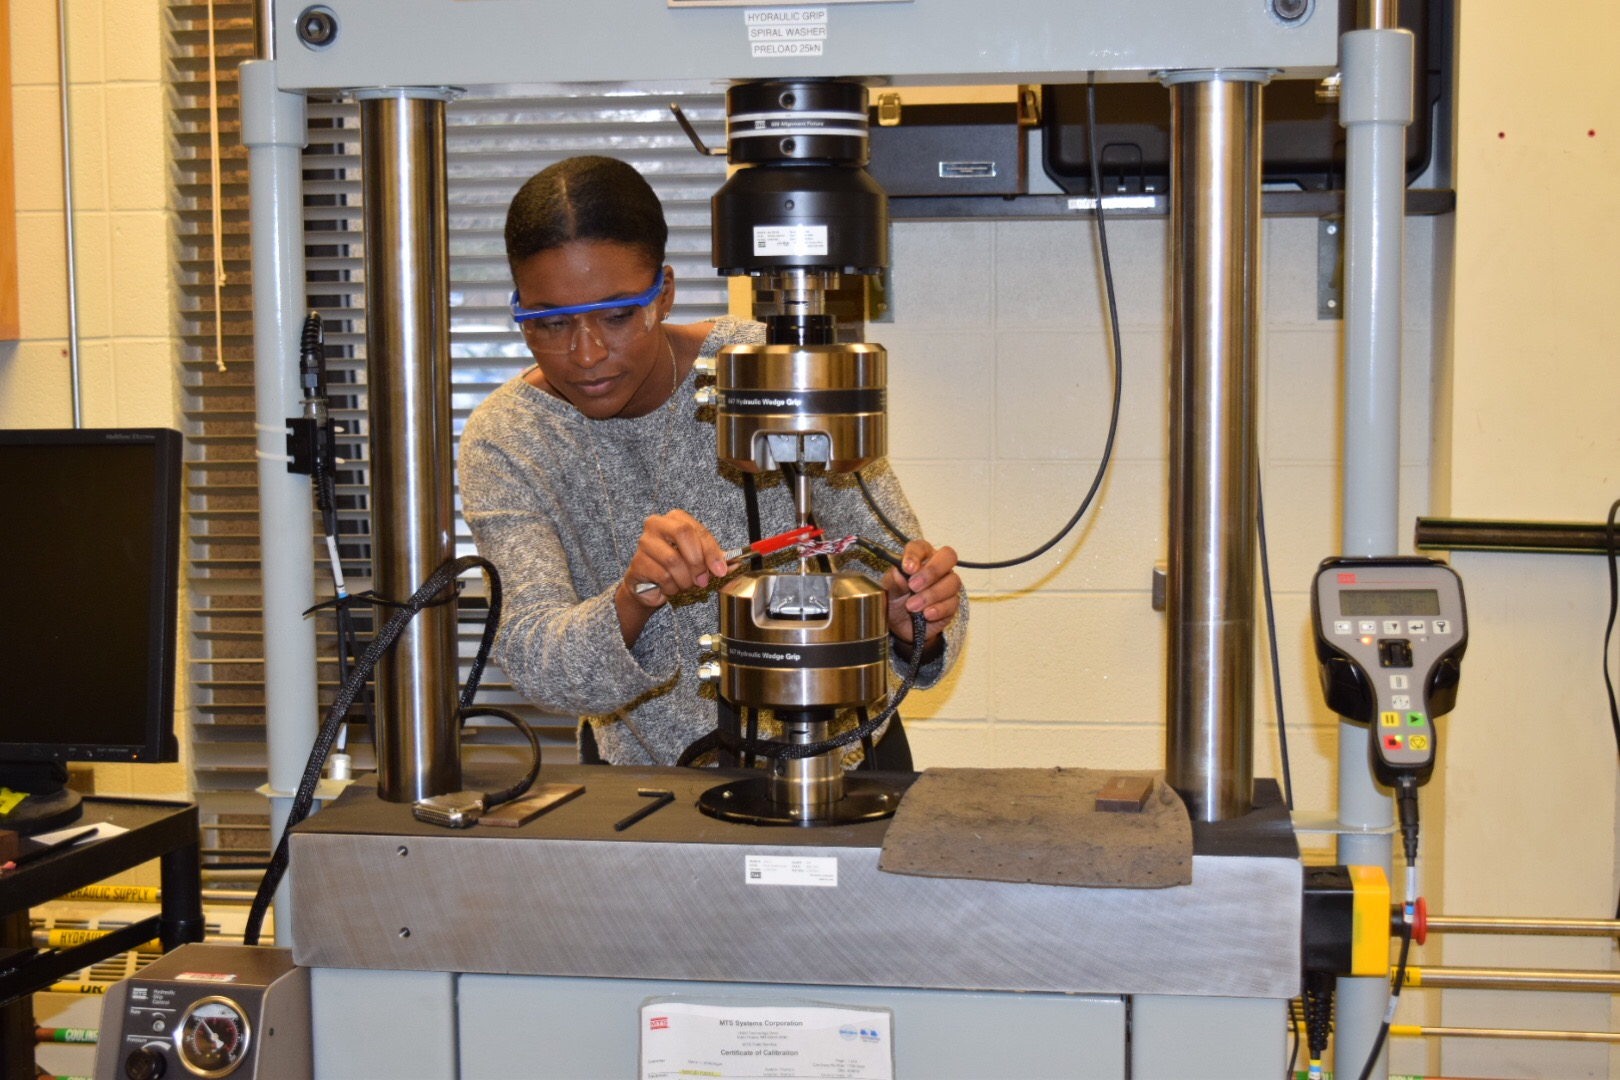 Loading a sample into a servo hydraulic instrument for low cycle fatigue testing